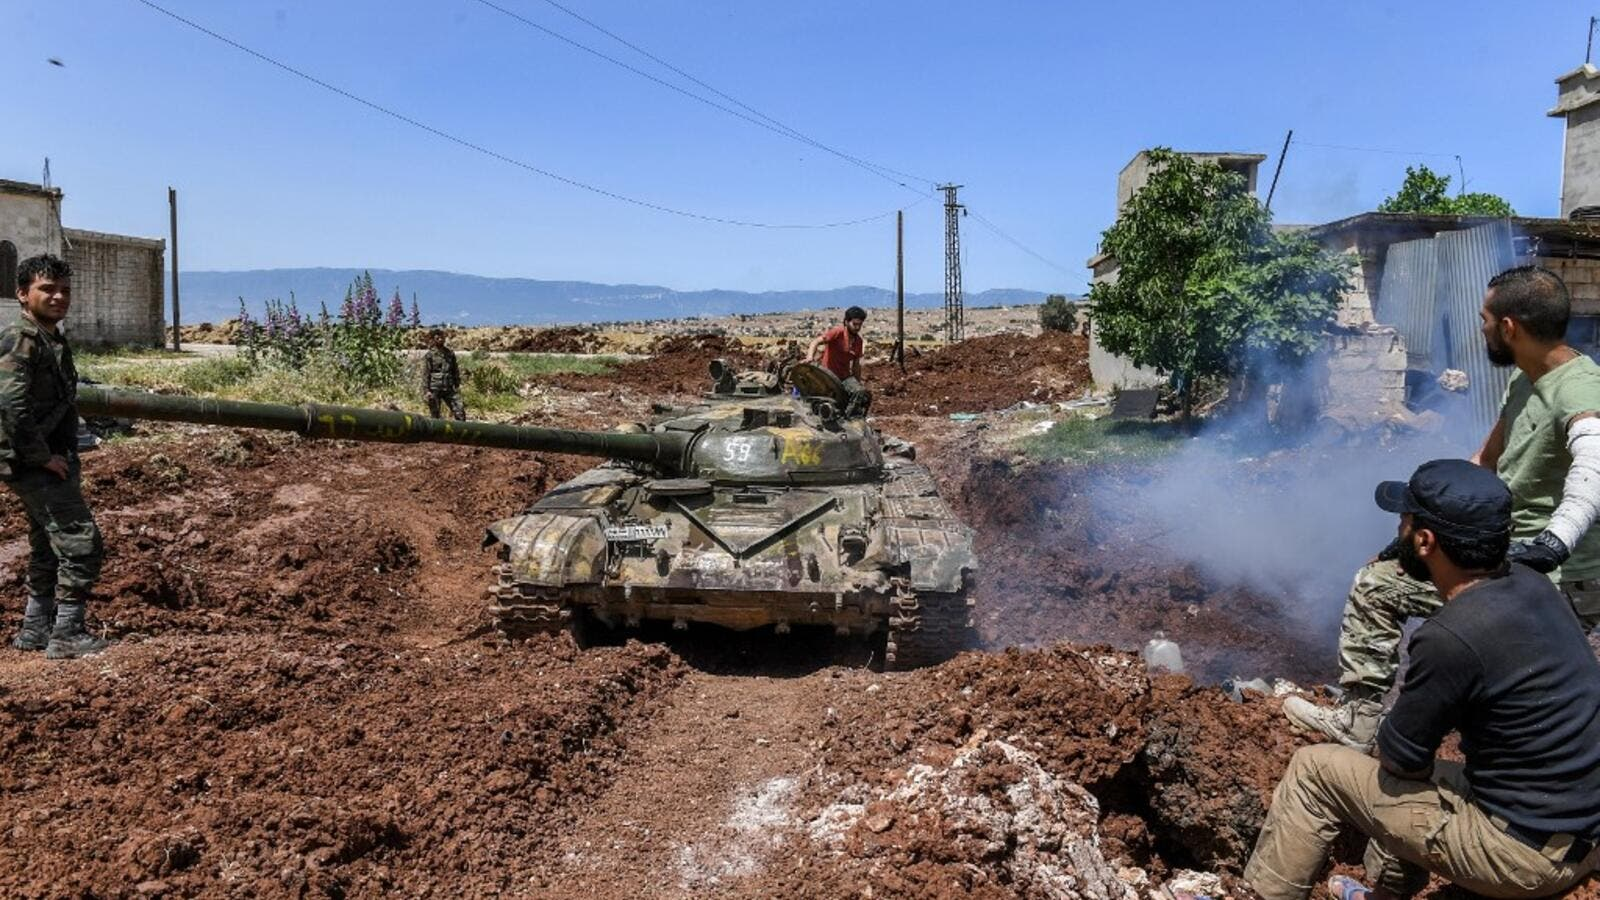 A Syrian government forces' tank navigates through the village of al-Jabiriya in the northern countryside of Hama province on May 25, 2019. (George OURFALIAN / AFP)